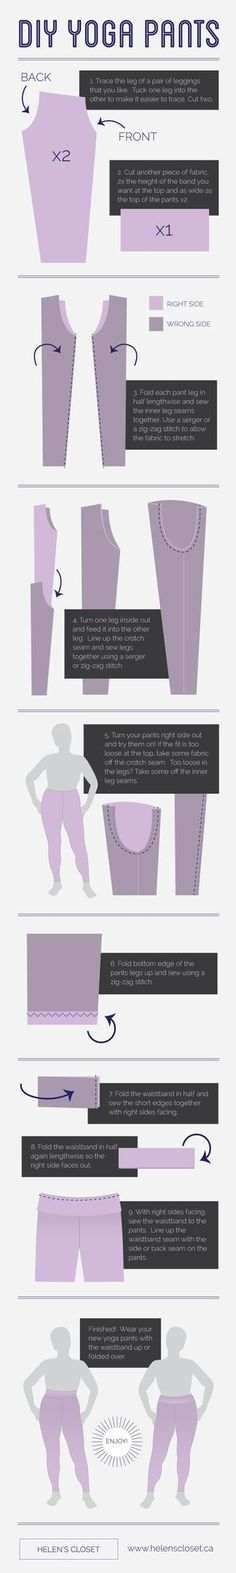 DIY Yoga Pants | Helen's Closet | Bloglovin'